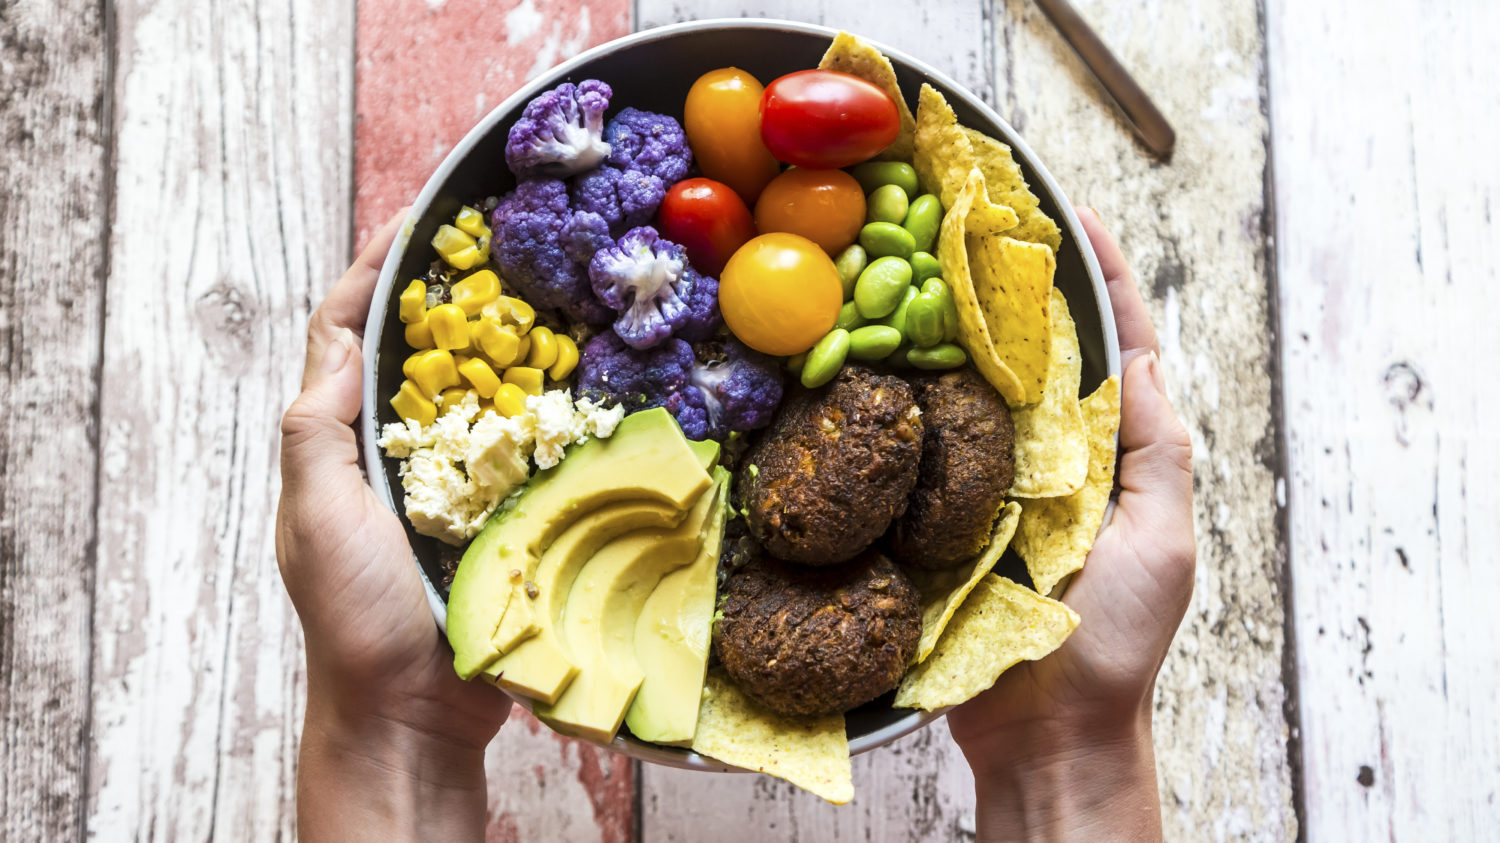 This Diet Is Better For the Planet  But Is It Better For You